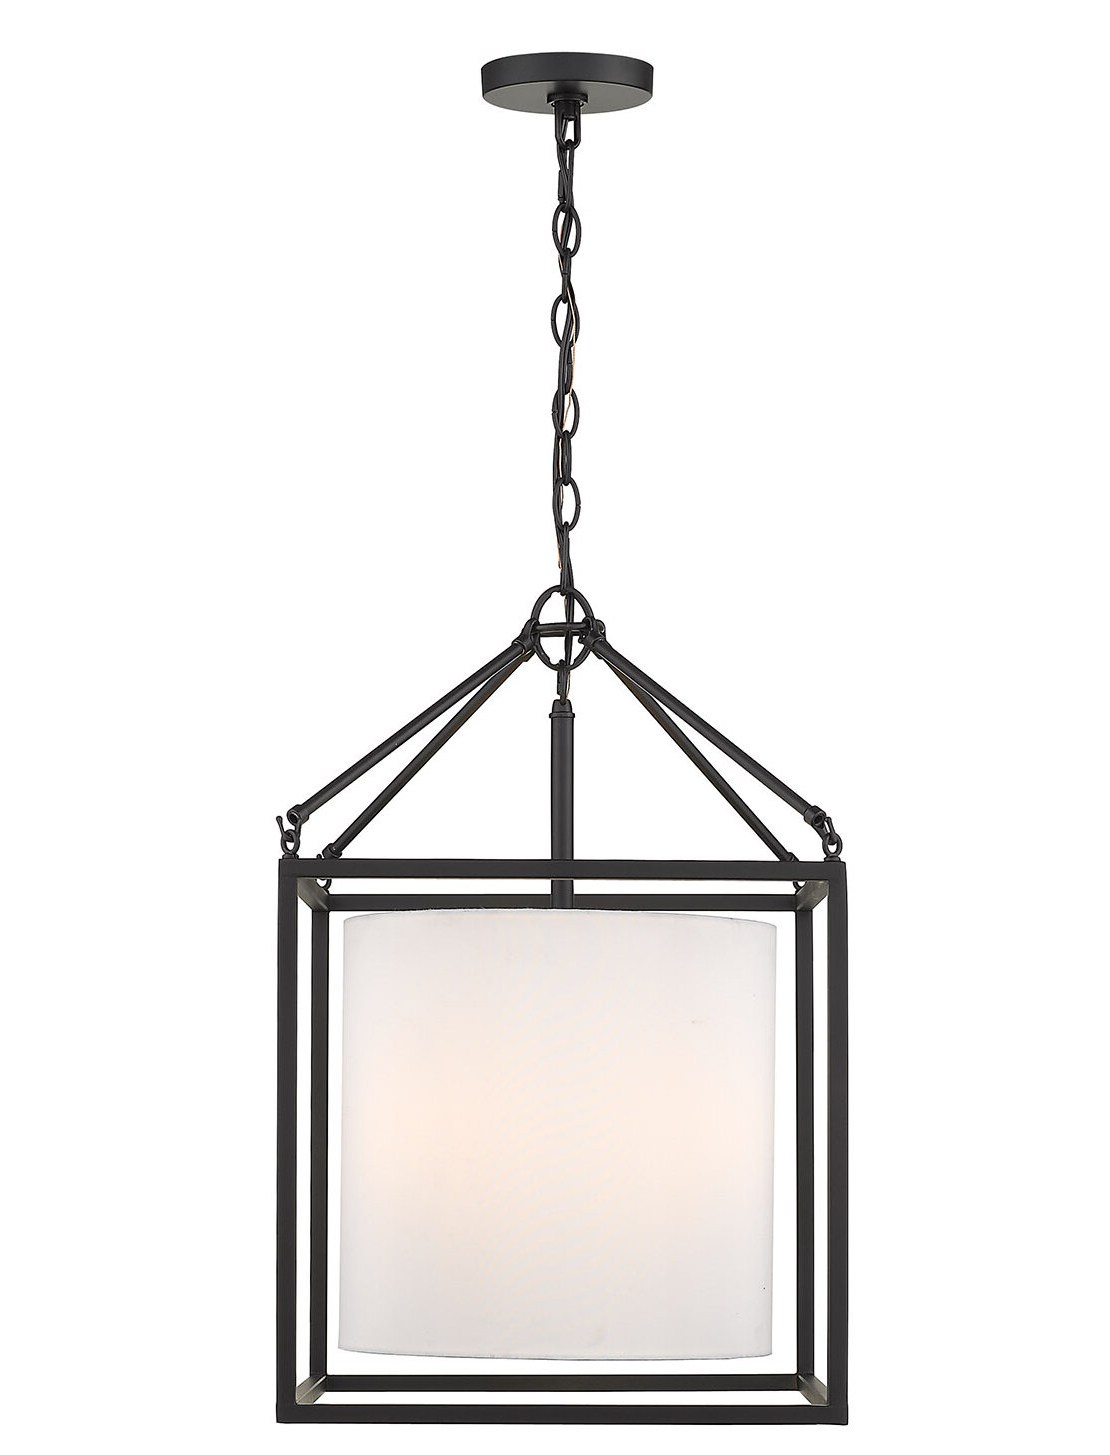 Newest Dinapoli 3 Light Lantern Chandelier Inside Louanne 3 Light Lantern Geometric Pendants (View 10 of 25)